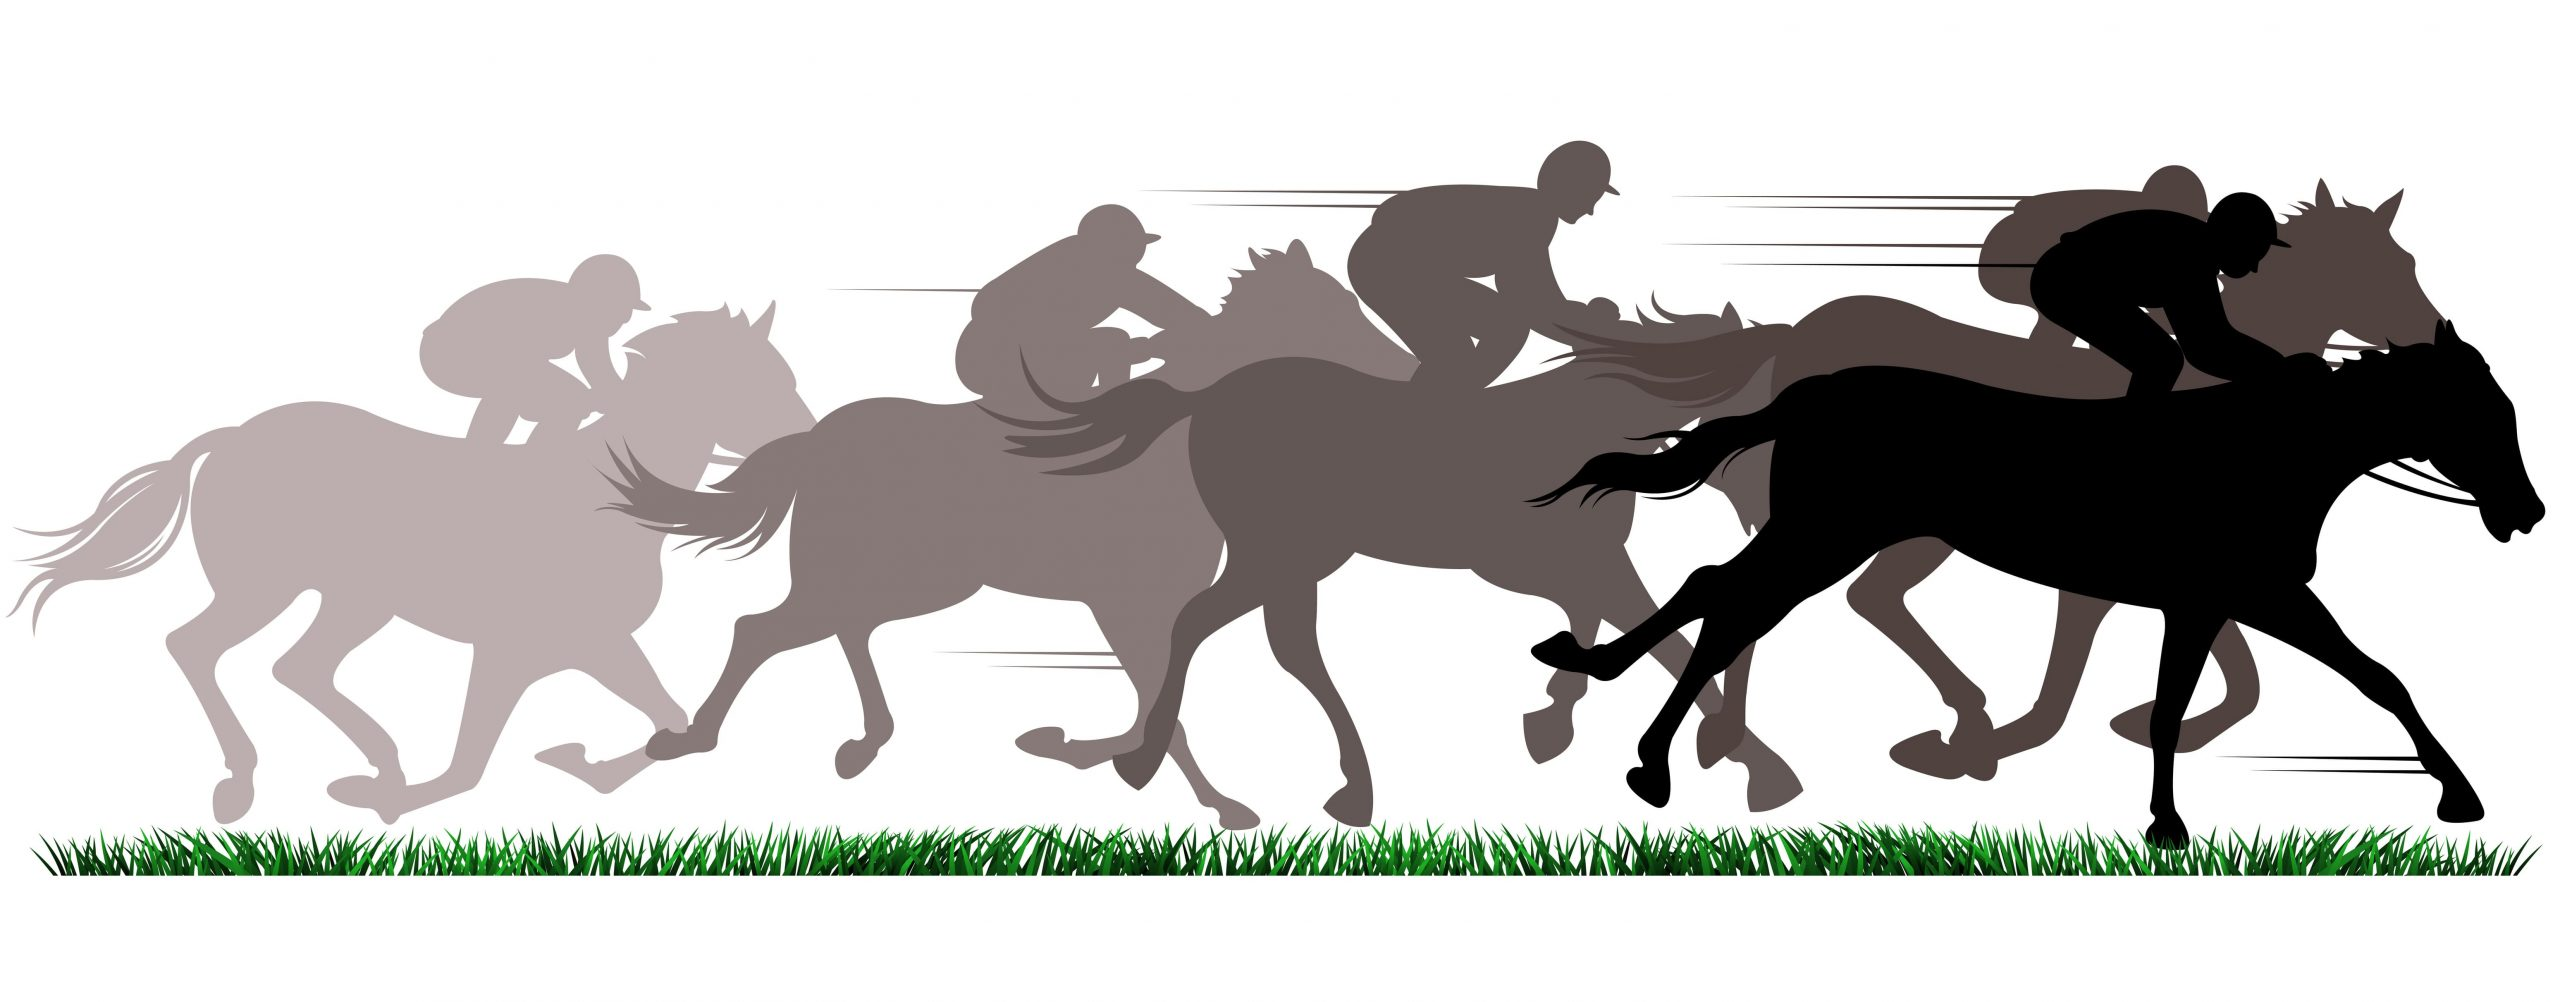 horse racing article featured image